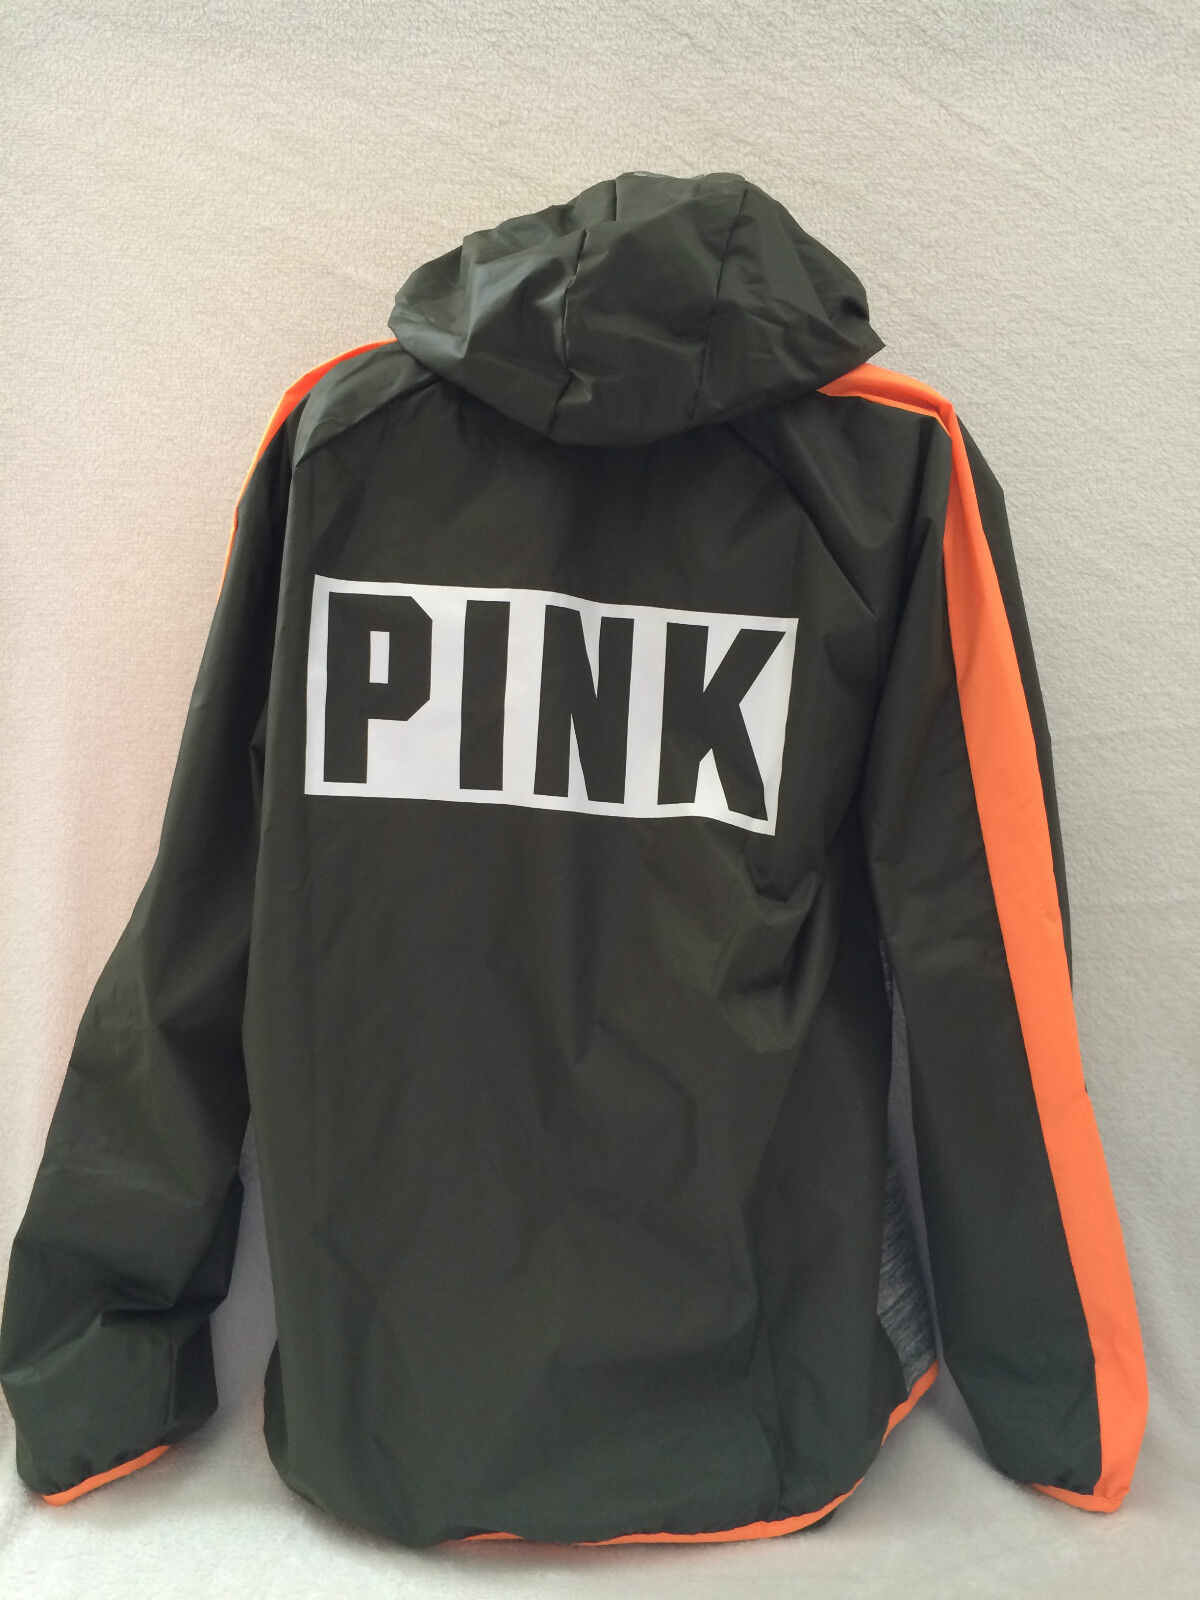 VICTORIA'S SECRET PINK ANORAK ZIP HOODIE,OLIVE MARL GREY orange XS  SM